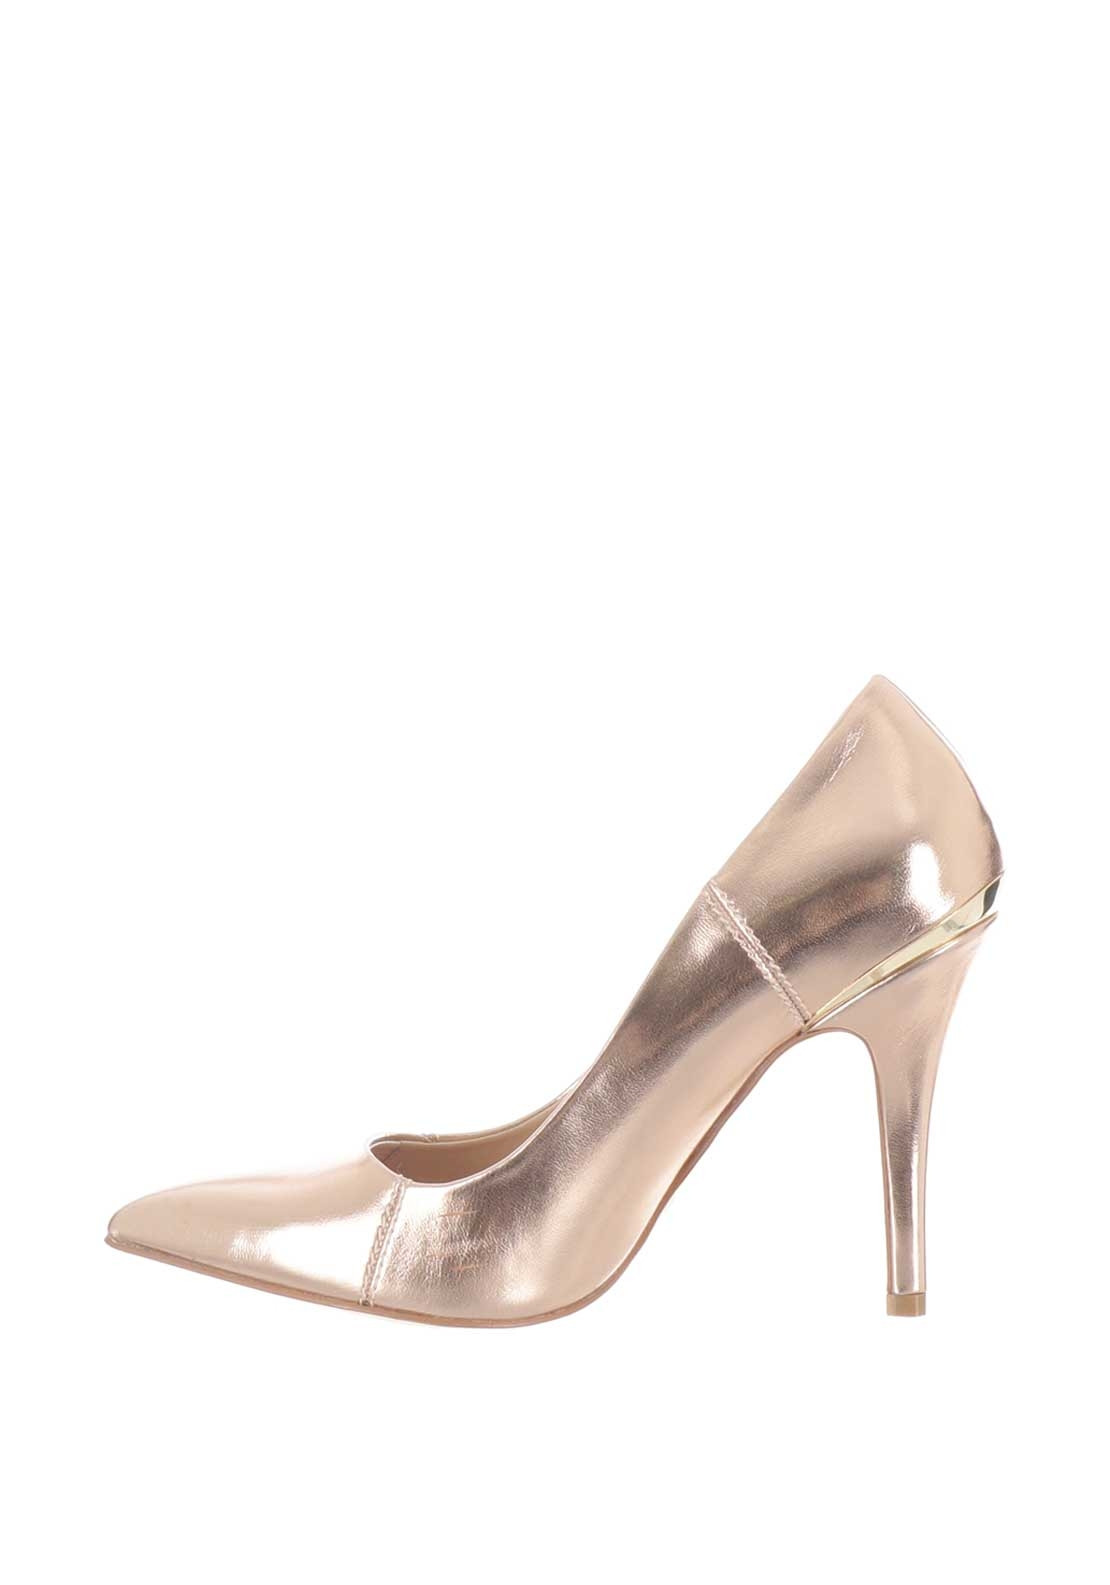 2e3c660c5a0 Glamour Carrie Metallic Heeled Shoes